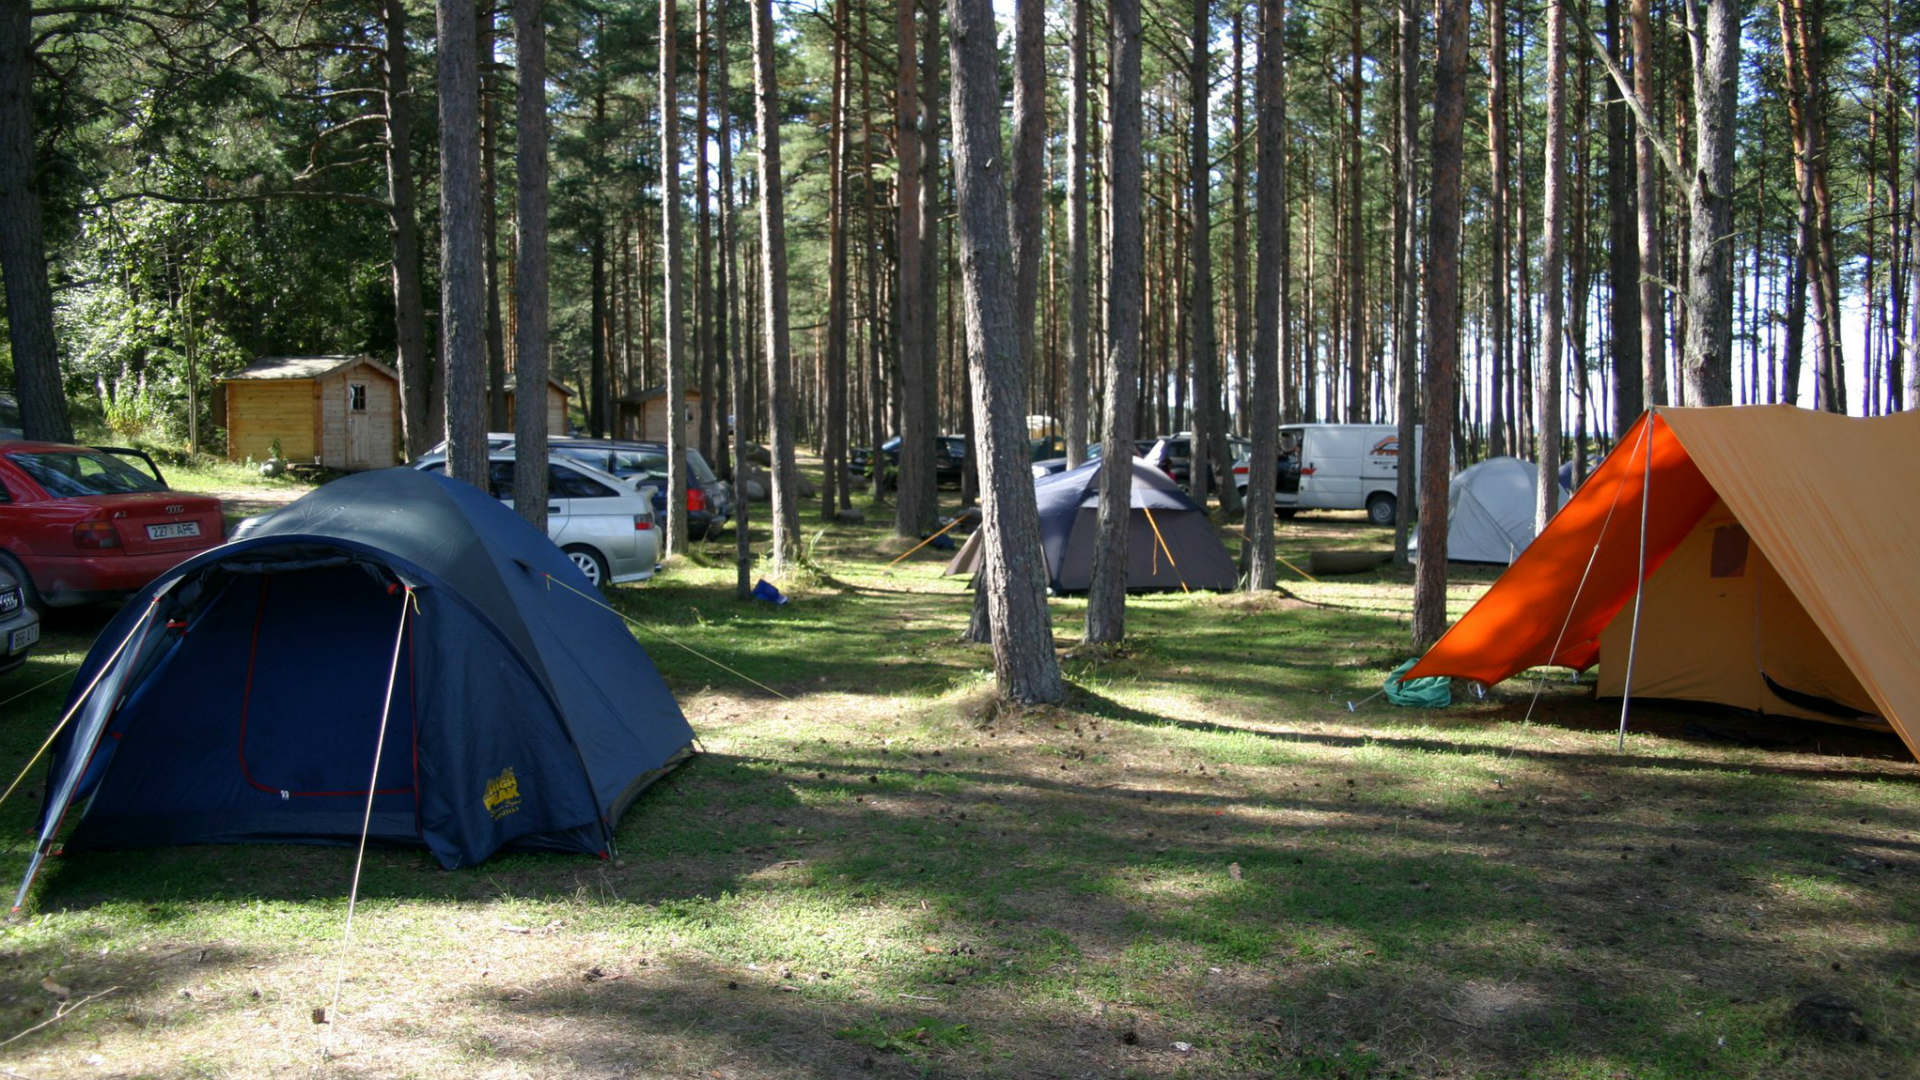 Camping, Tent place